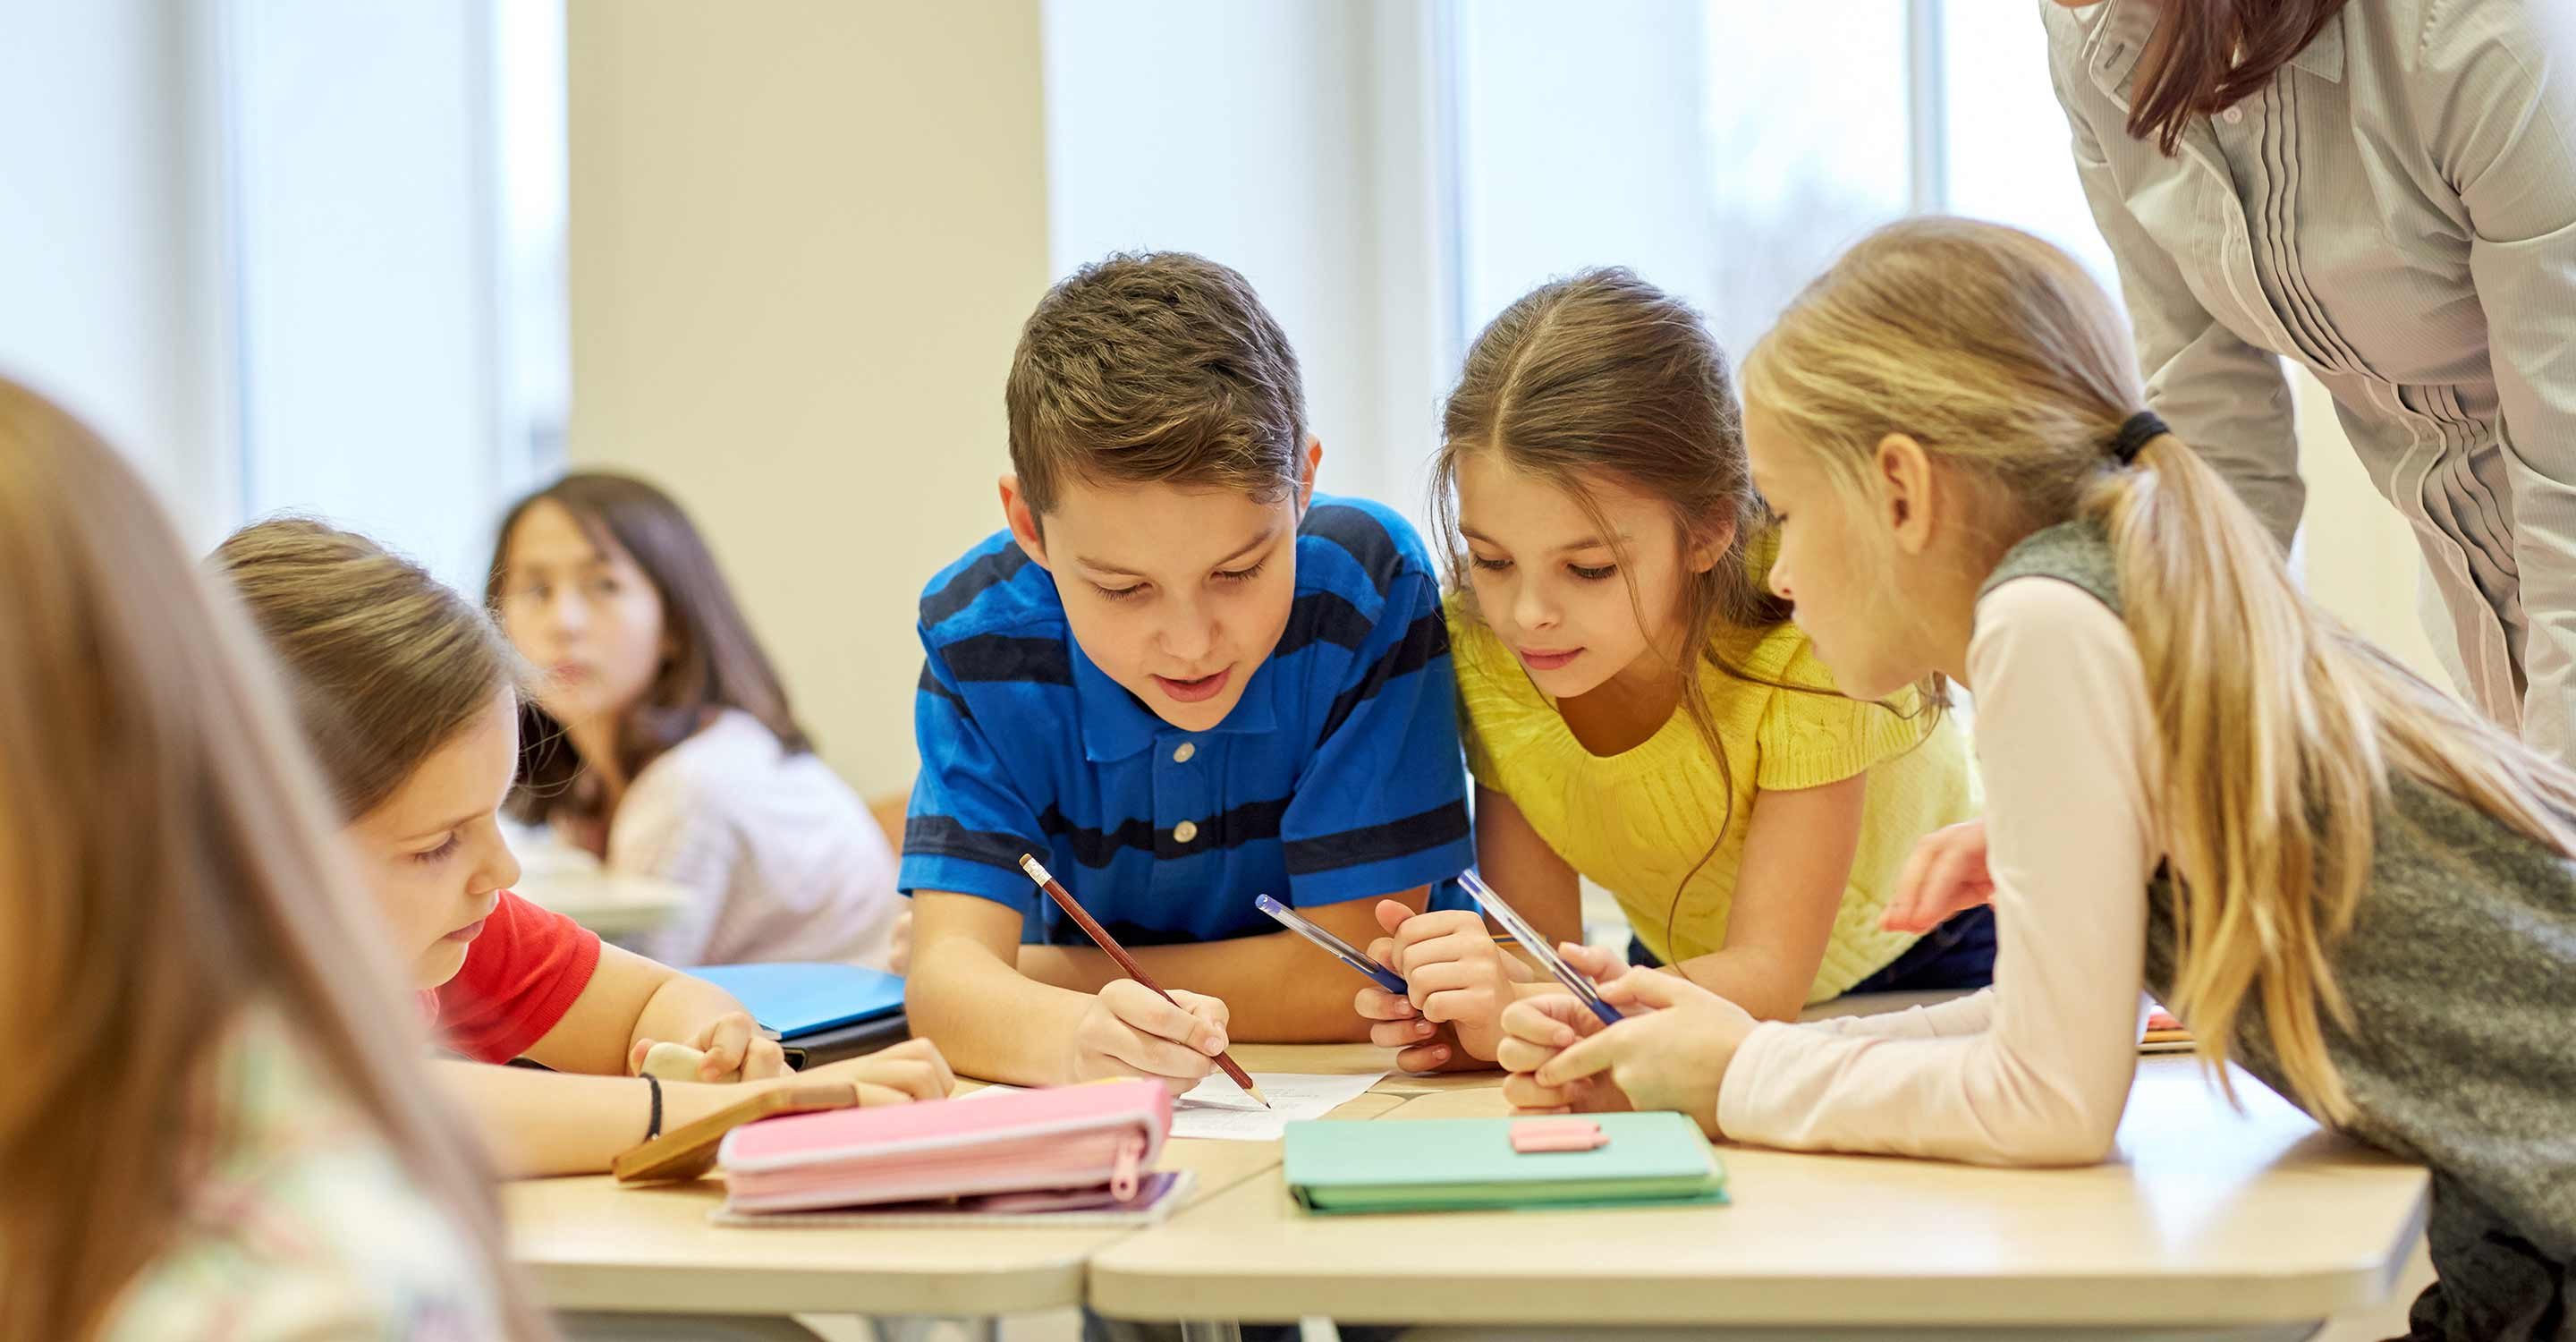 Tips to manage asthma and allergies at school